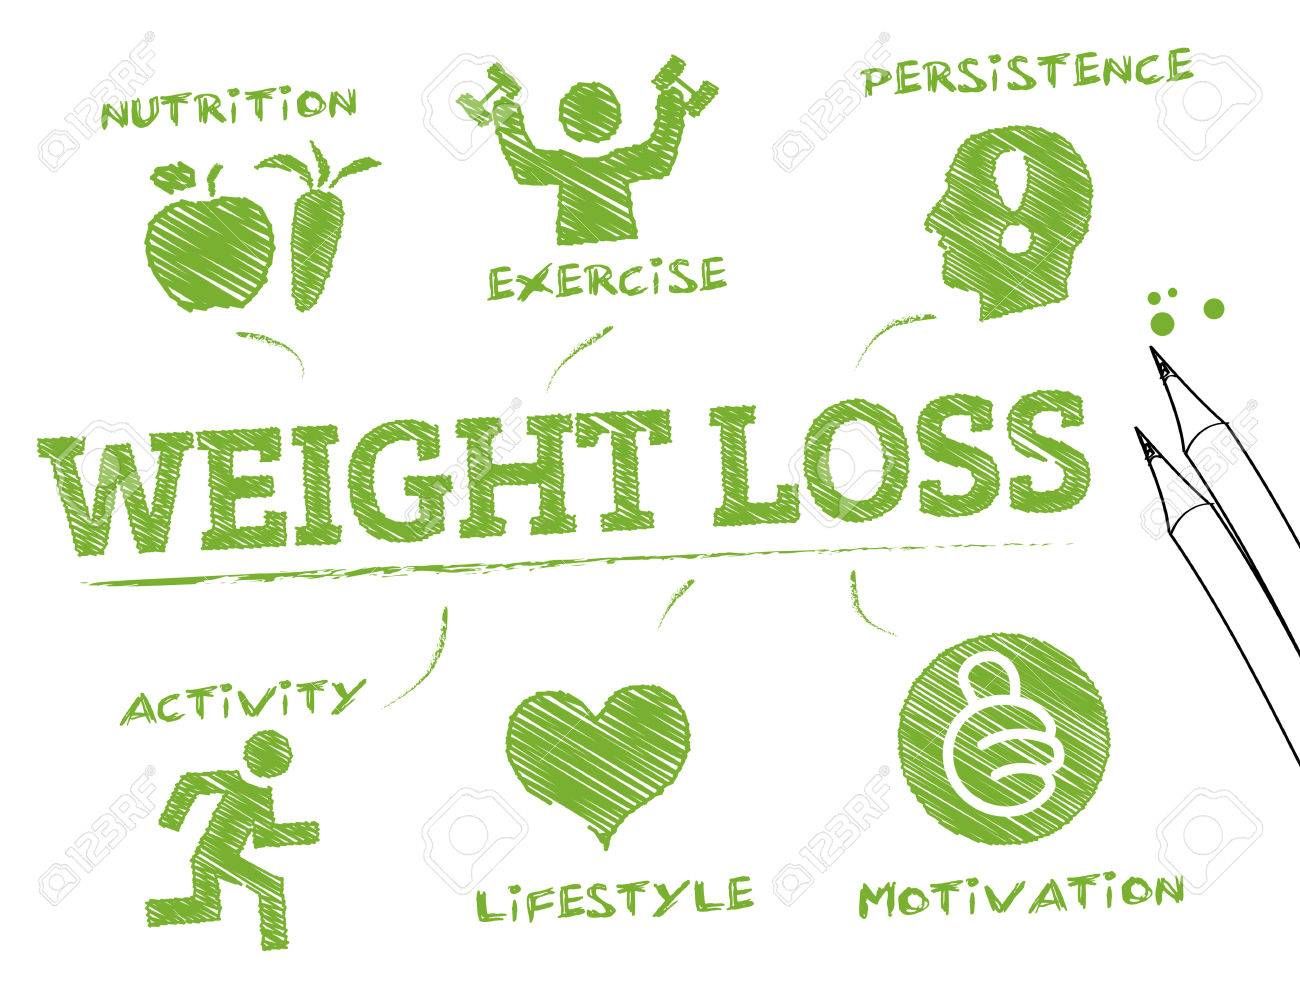 weight loss  Chart with keywords and icons